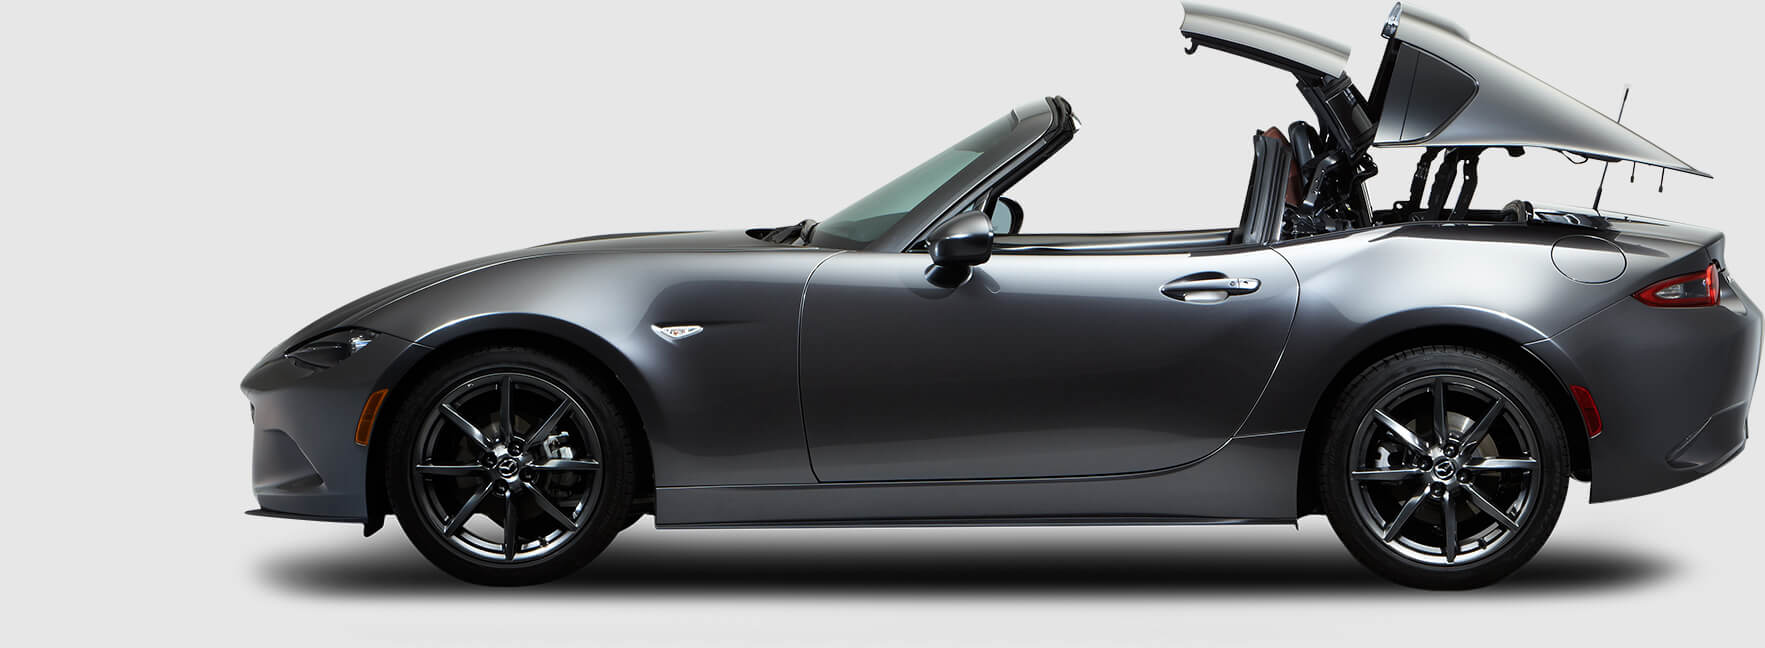 2017 mx 5 rf launch edition mazda usa. Black Bedroom Furniture Sets. Home Design Ideas